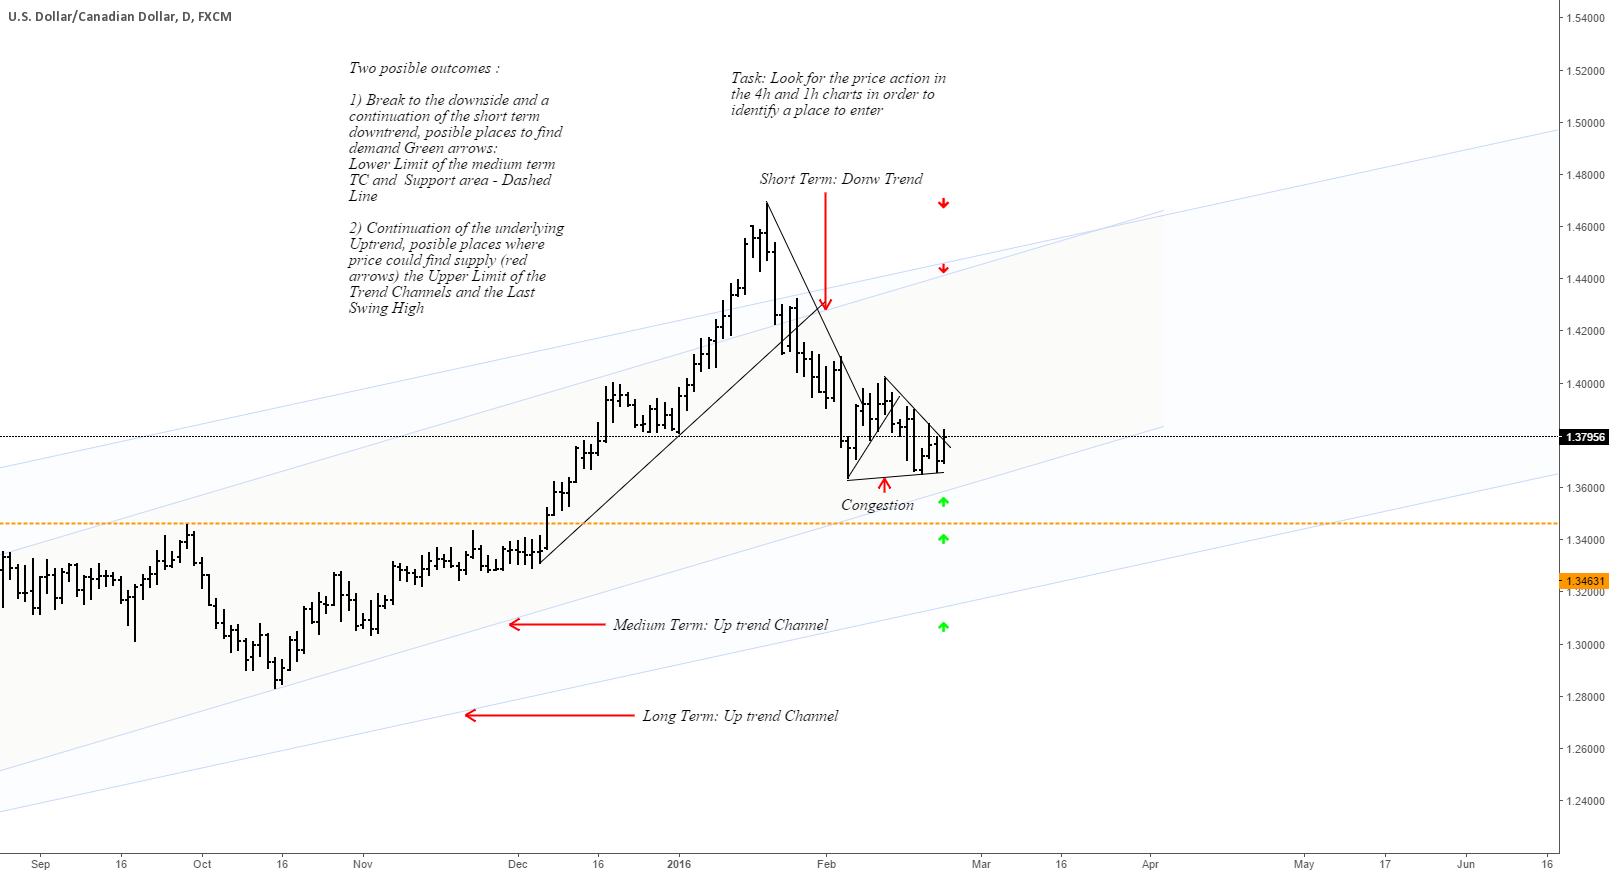 USDCAD Trading View